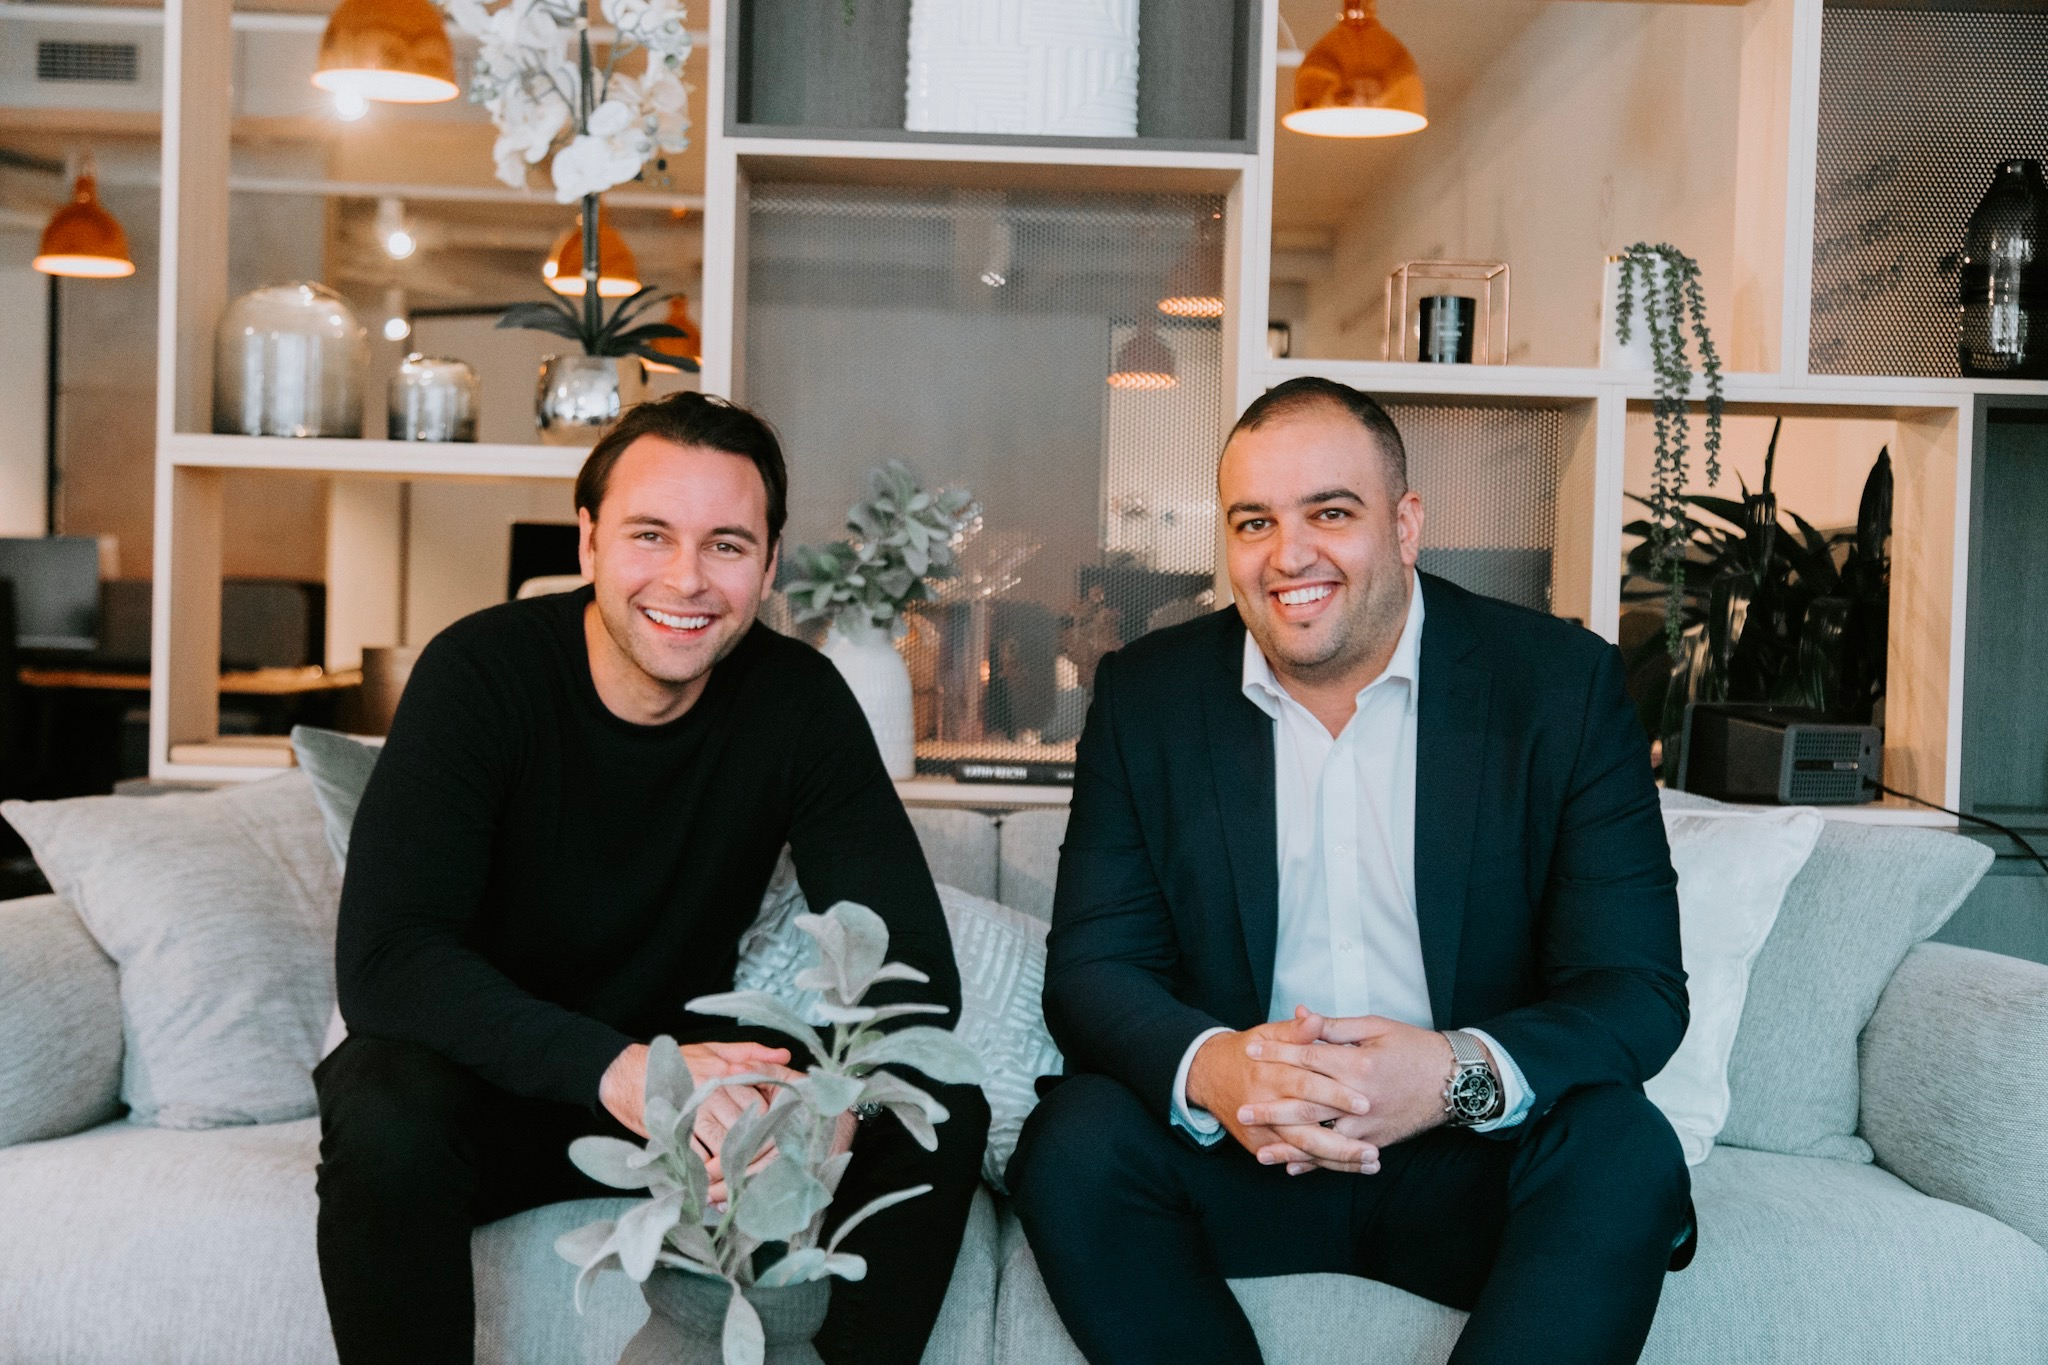 LJ Hooker signals rapid growth in property management with key appointment  Real Estate Business - May '19